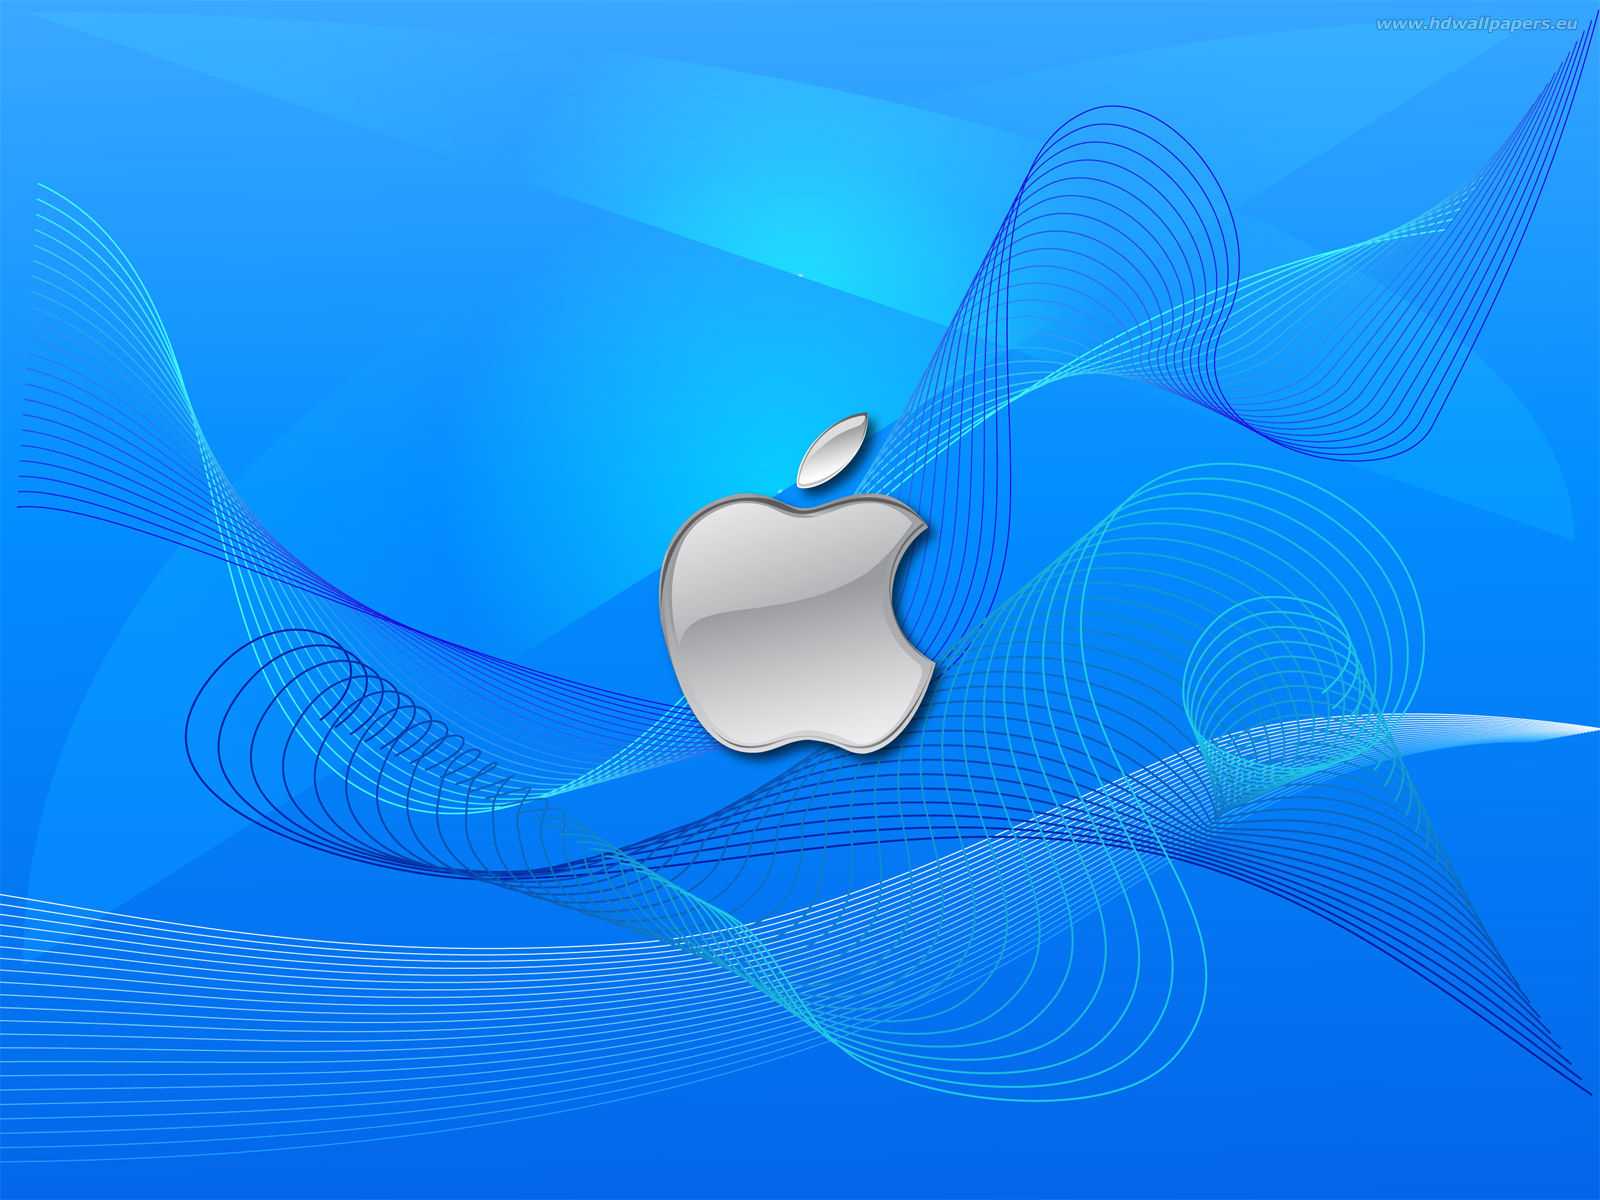 apple-wallpapers-1600x1200